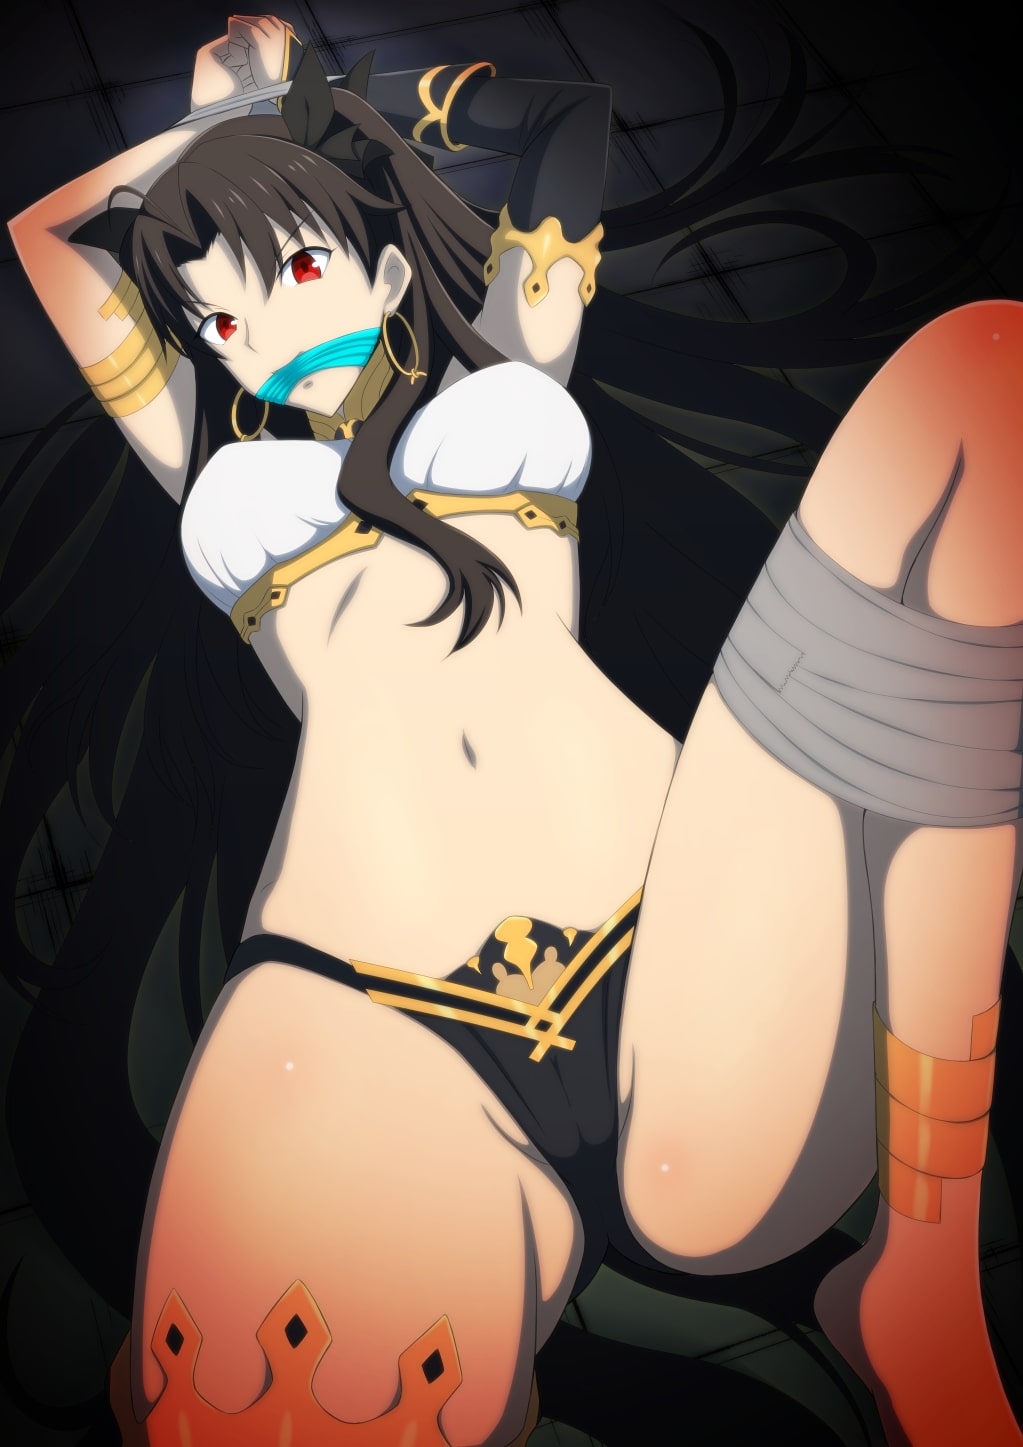 1girl ahoge angry anklet arms_up asymmetrical_legwear asymmetrical_sleeves bangs black_hair black_panties blush bound bound_wrists breasts commentary_request crown detached_sleeves earrings elbow_gloves fate/grand_order fate_(series) gag gagged gloves highres hoop_earrings ishtar_(fate) ishtar_(fate)_(all) jewelry long_hair looking_at_viewer lying medium_breasts navel neck_ring on_back panties parted_bangs red_eyes restrained single_detached_sleeve single_elbow_glove single_sleeve single_thighhigh solo tape thigh-highs tiara tumamiya01 two_side_up underwear